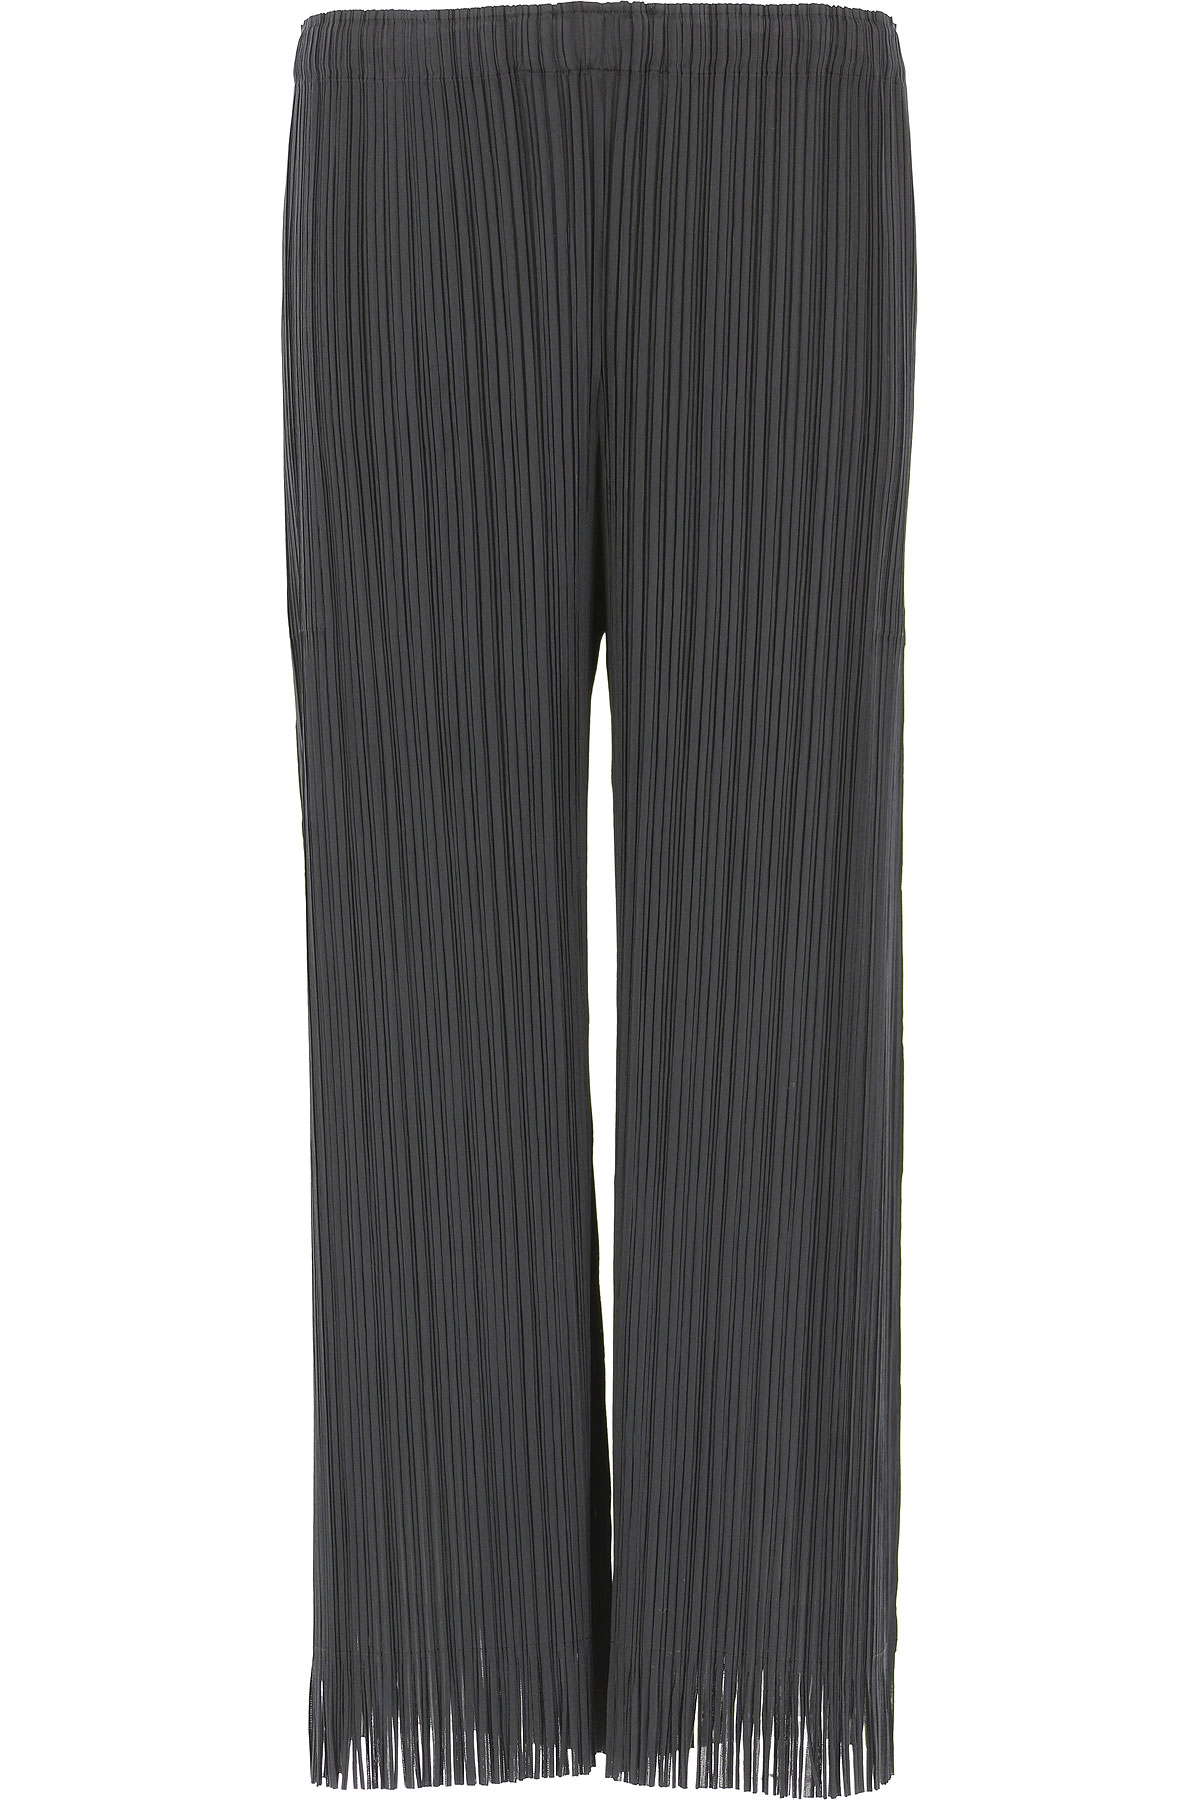 Image of Issey Miyake Pants for Women, Black, polyester, 2017